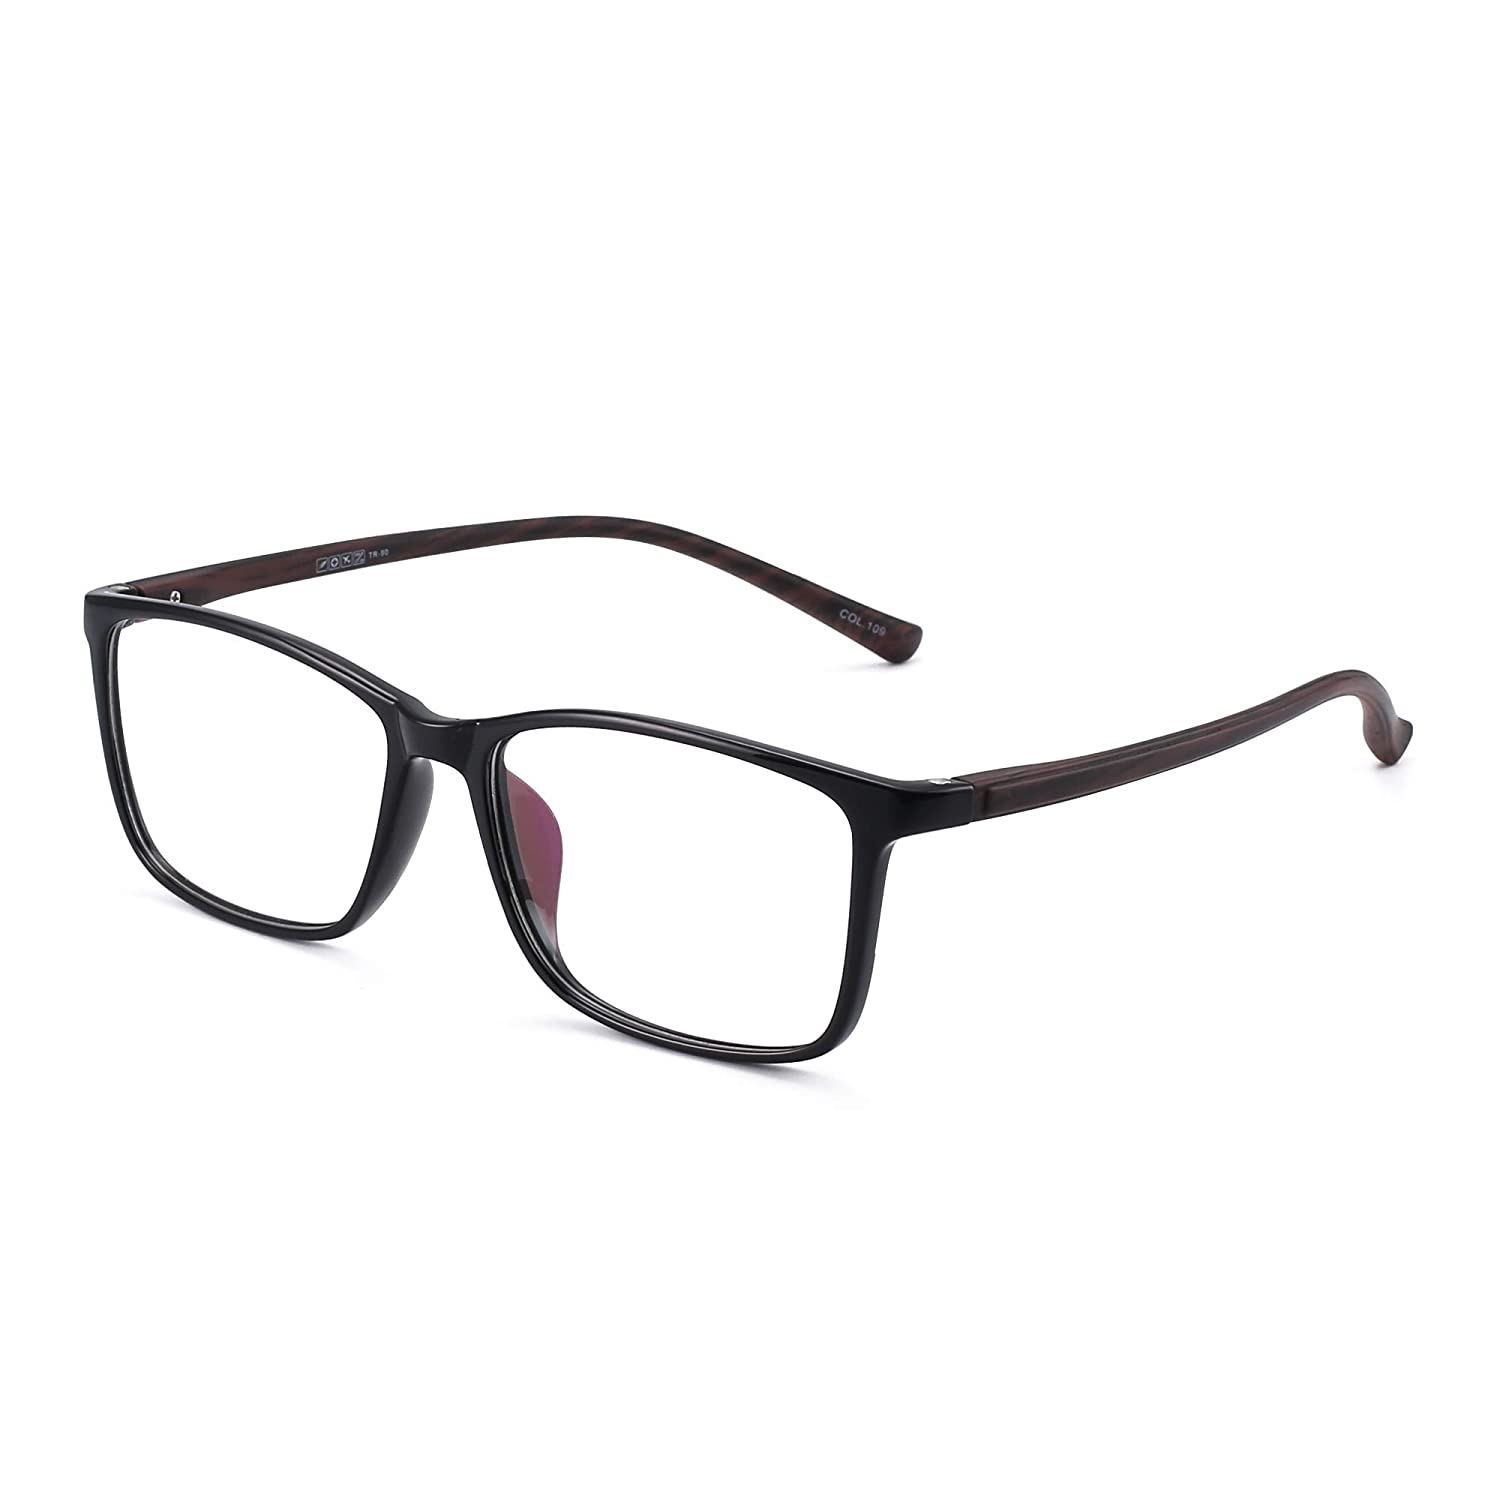 483d5a6613b Amazon.com  Retro Light TR Rectangular Optical Frame Rx-able Eyeglasses  Glasses Women Men Black  Clothing